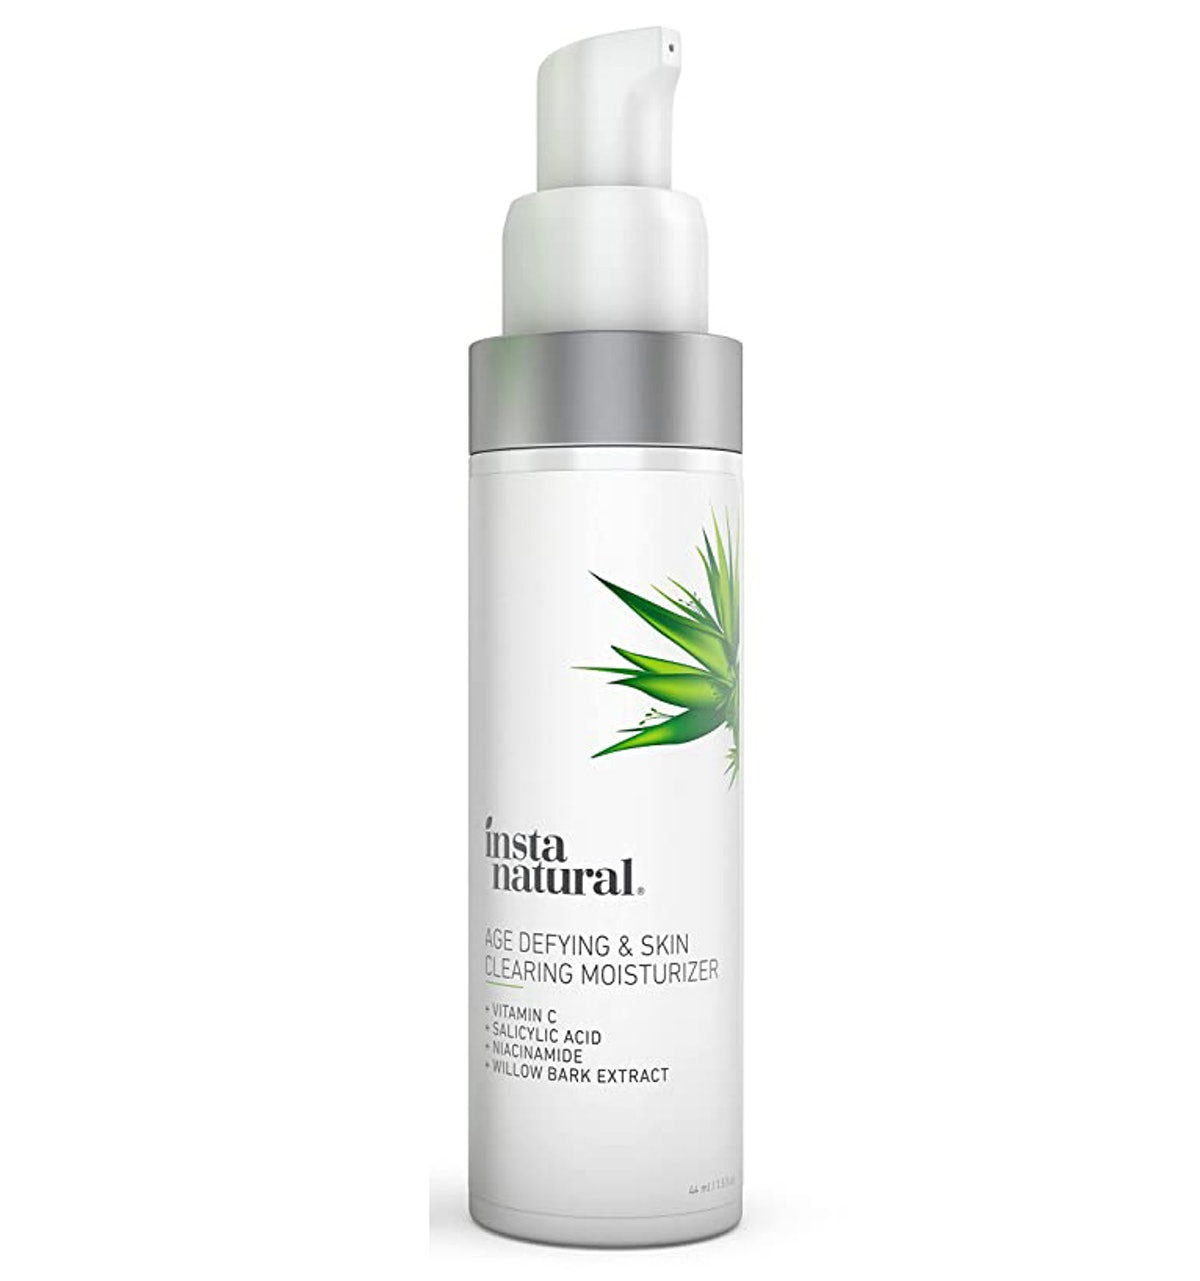 InstaNatural Age Defying & Skin Clearing Moisturizer